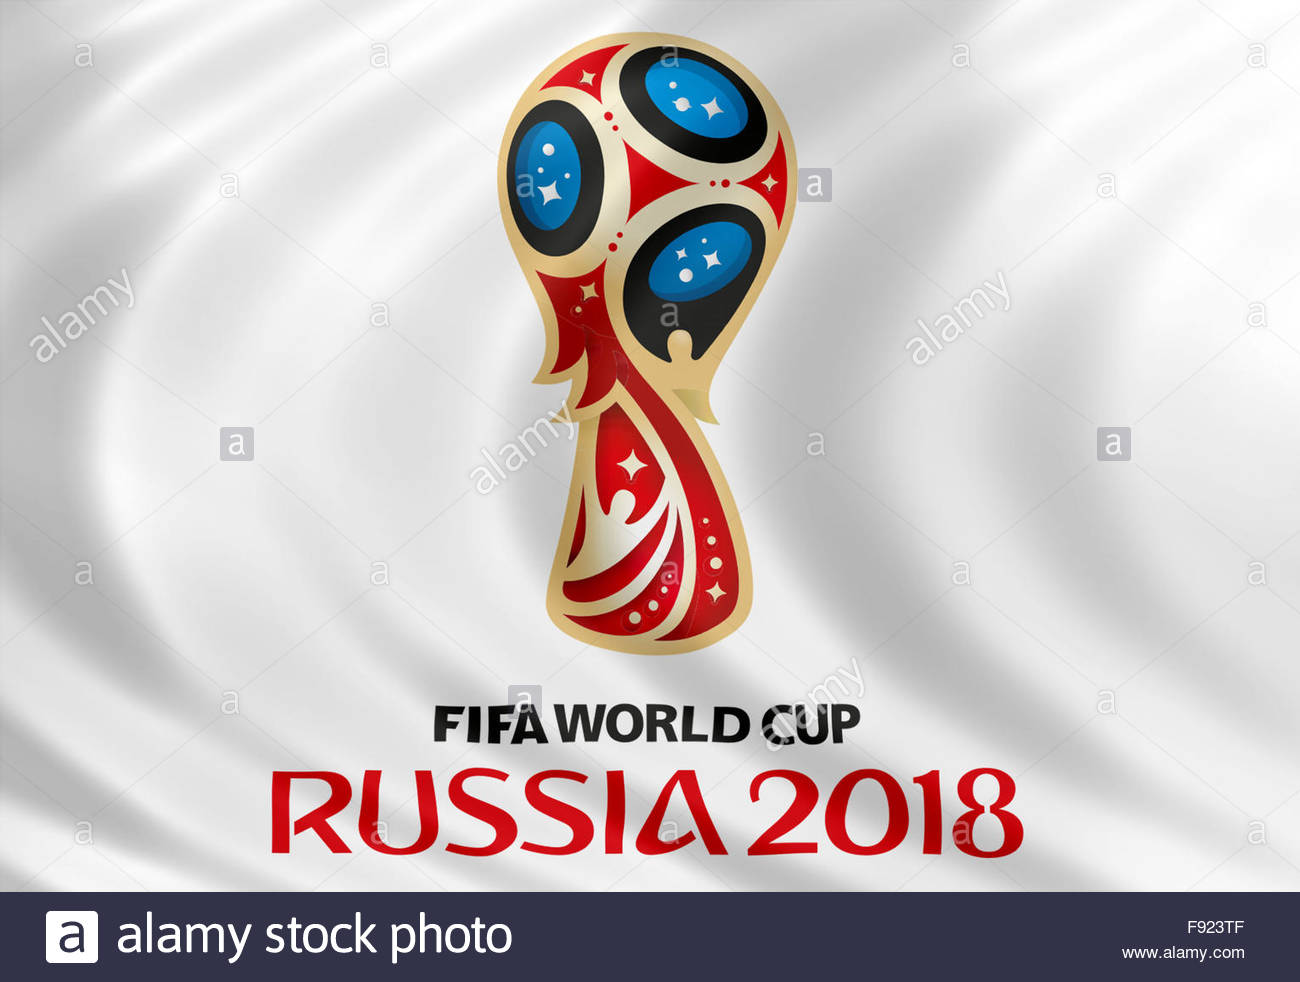 Image result for russian flag world cup